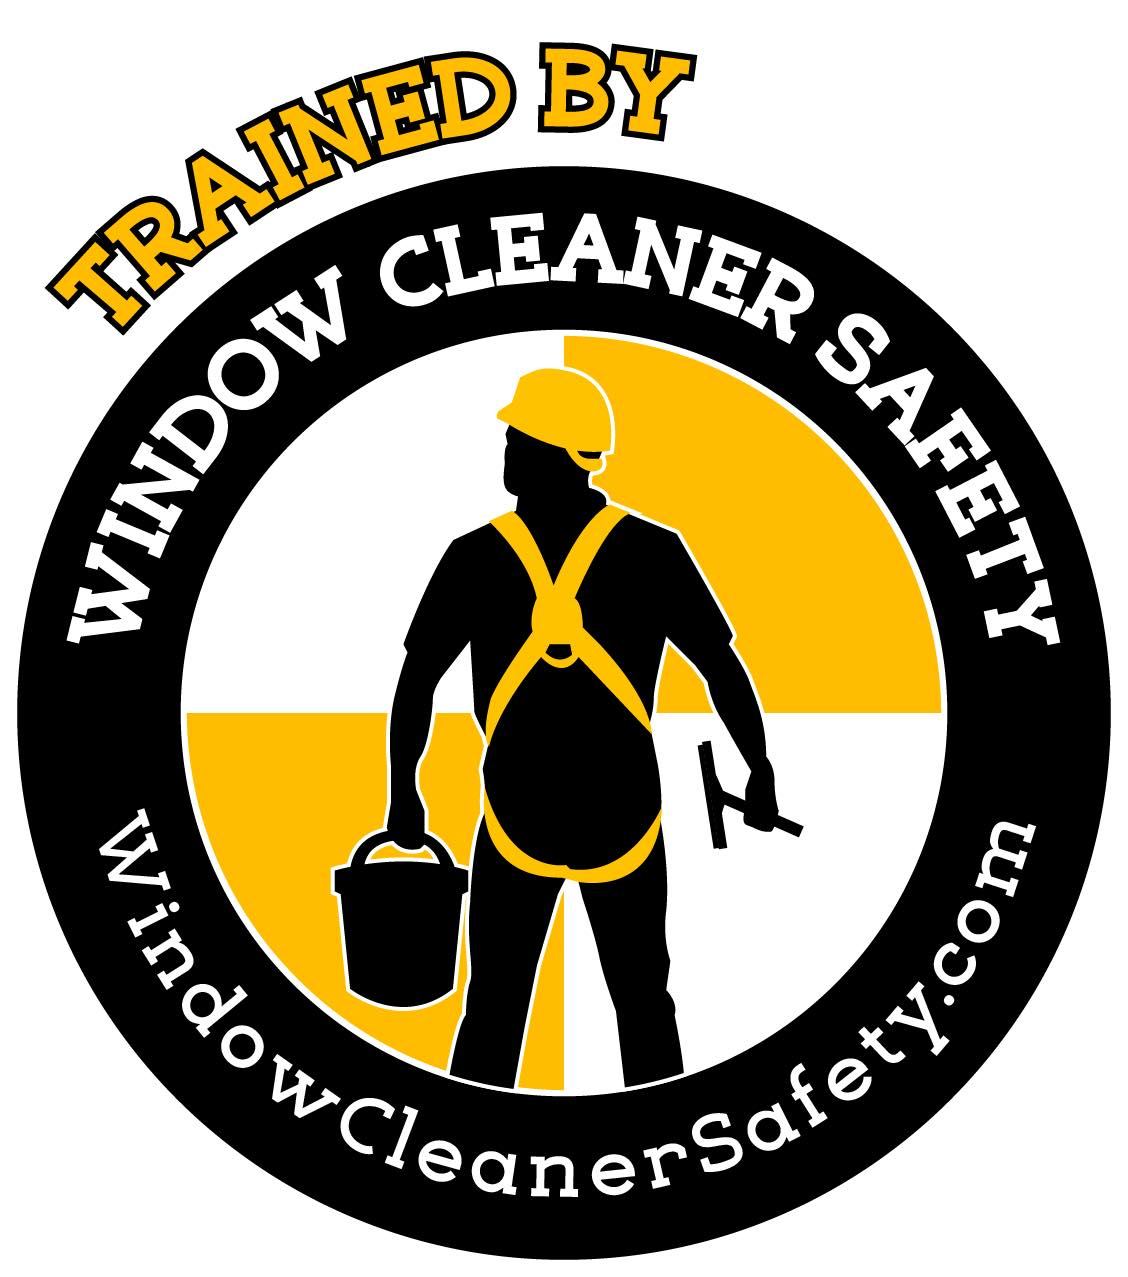 gabe's spotless window cleaning was trained by Window Cleaners Safety